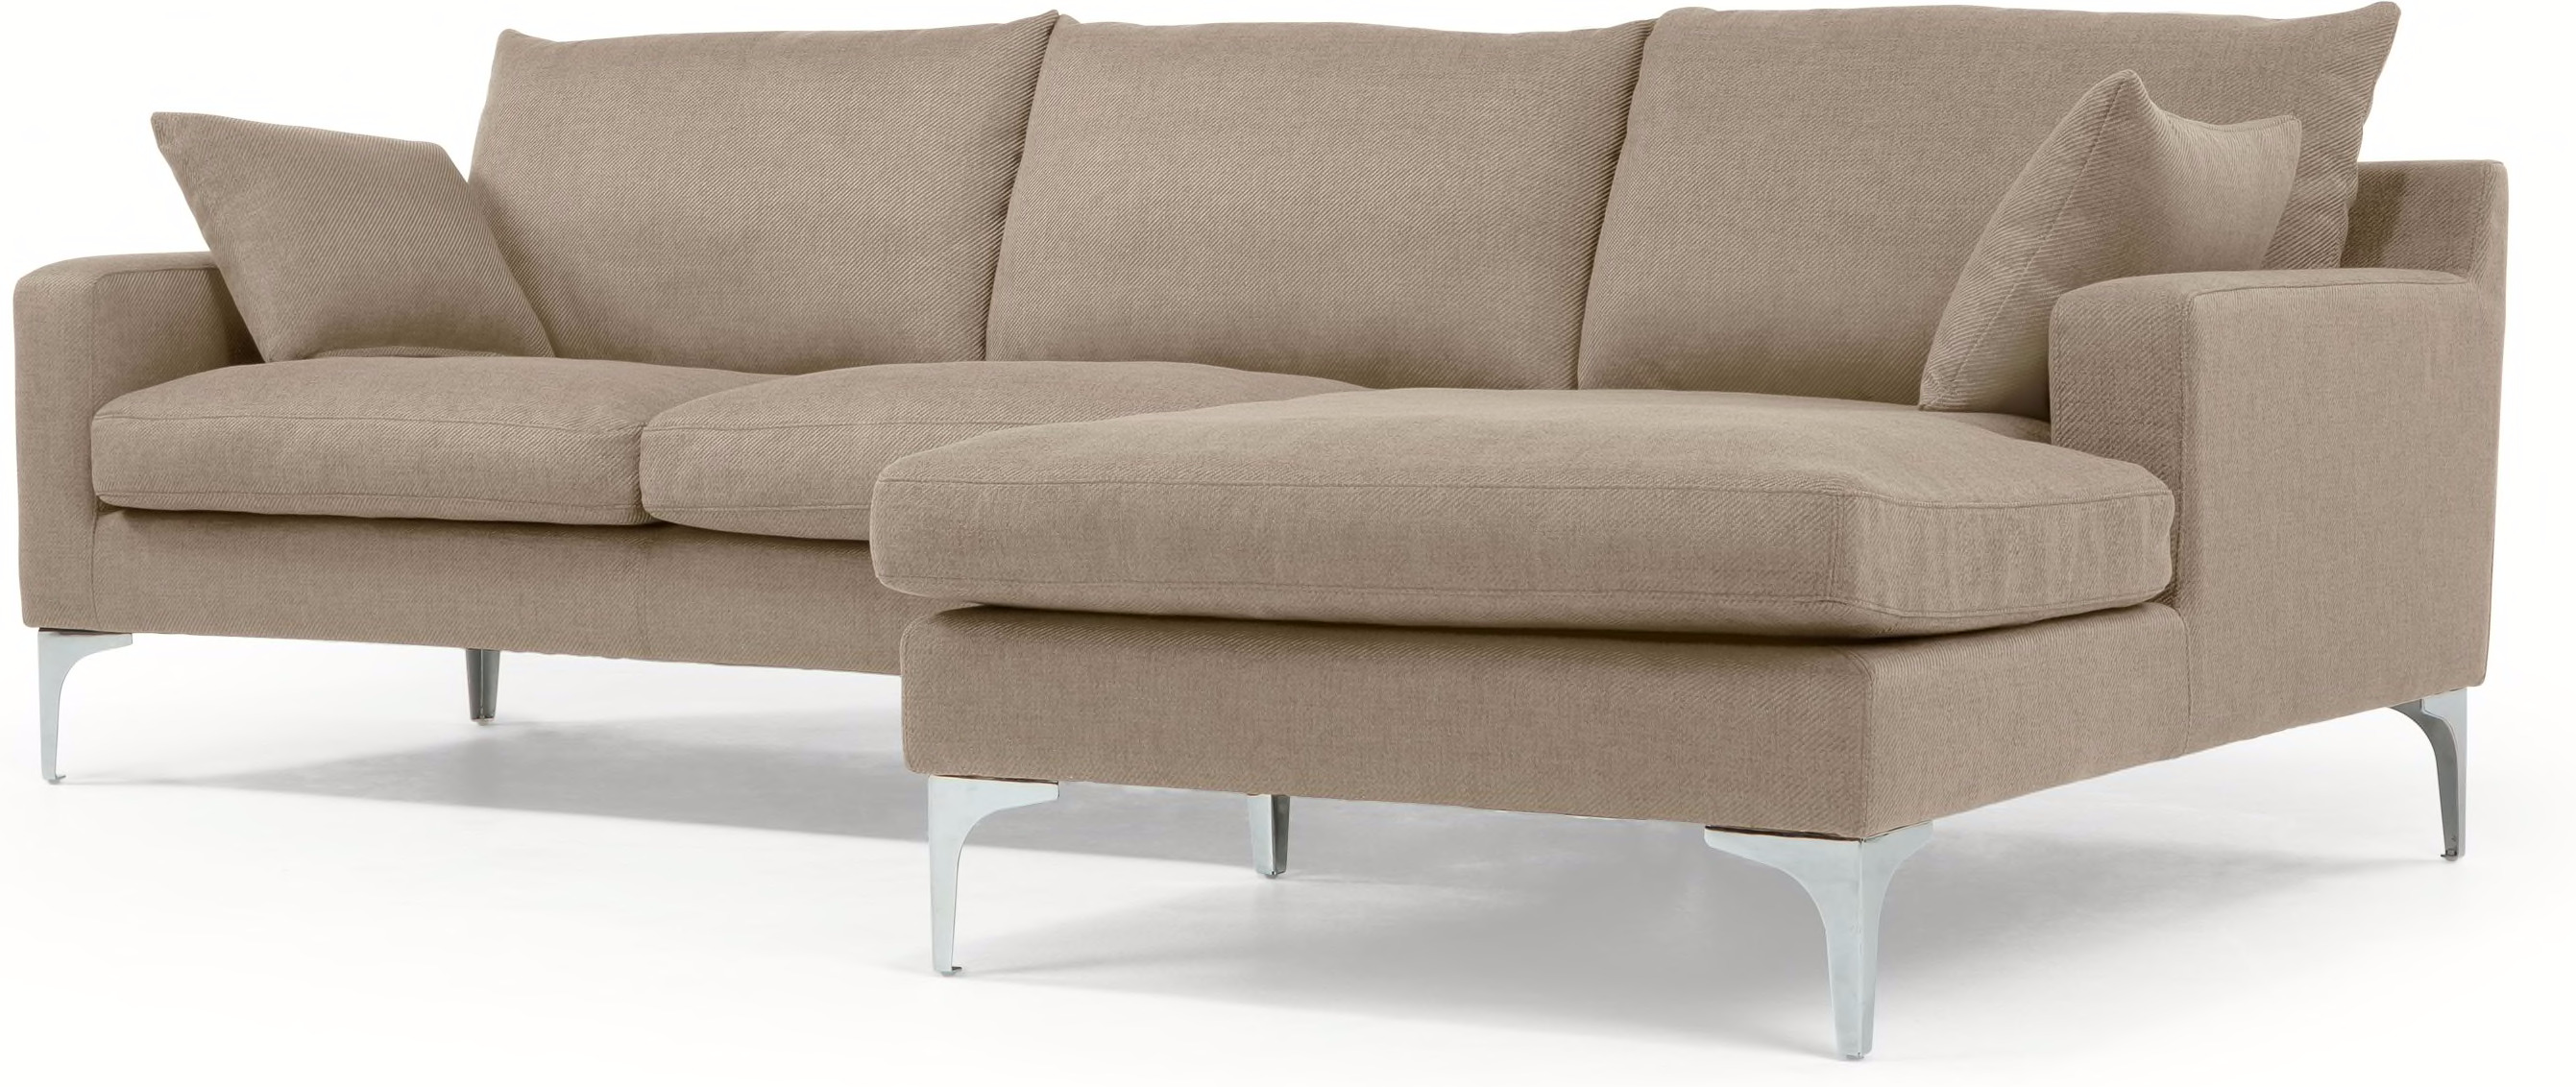 Mendini Right Hand Facing Corner Sofa Group Soft Taupe